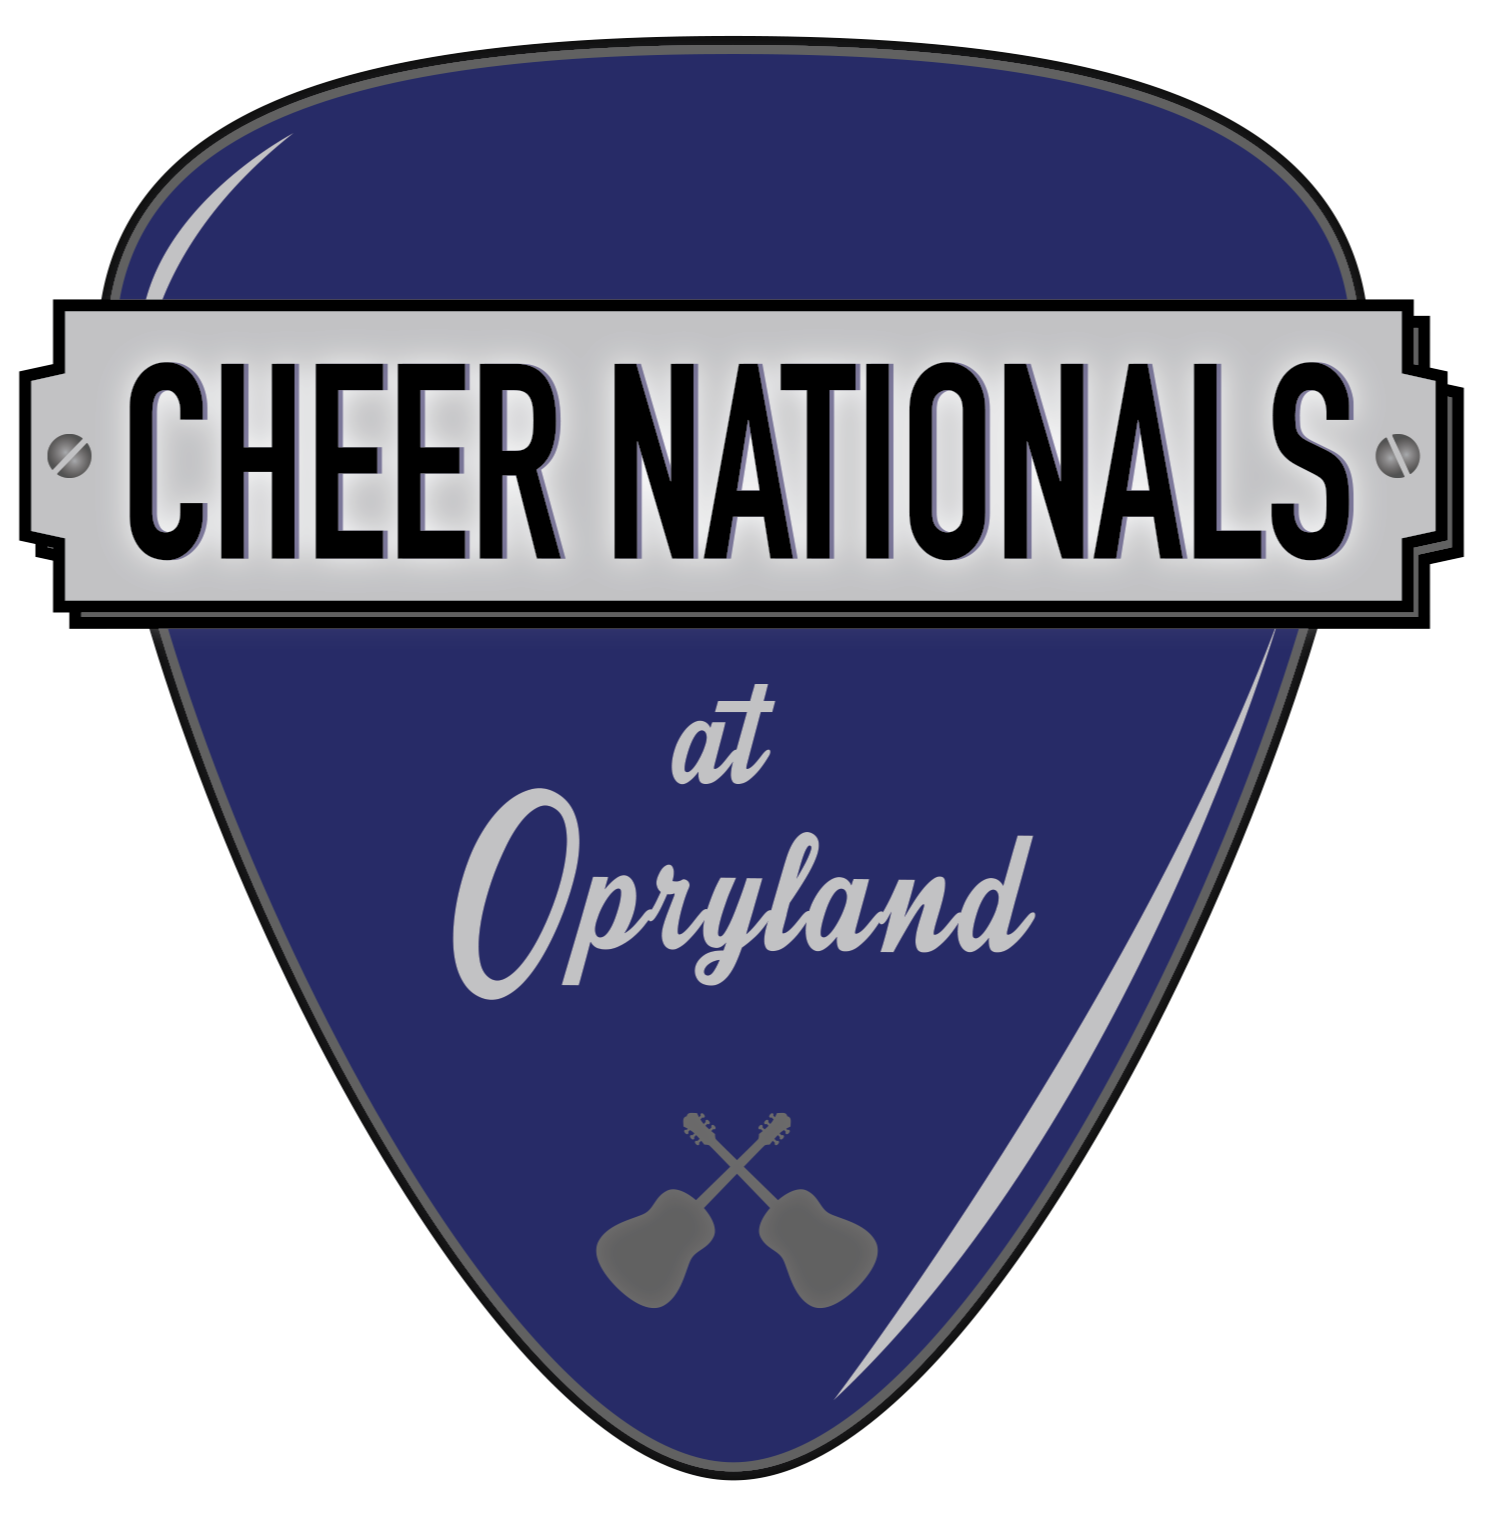 Cheer Nationals Opryland